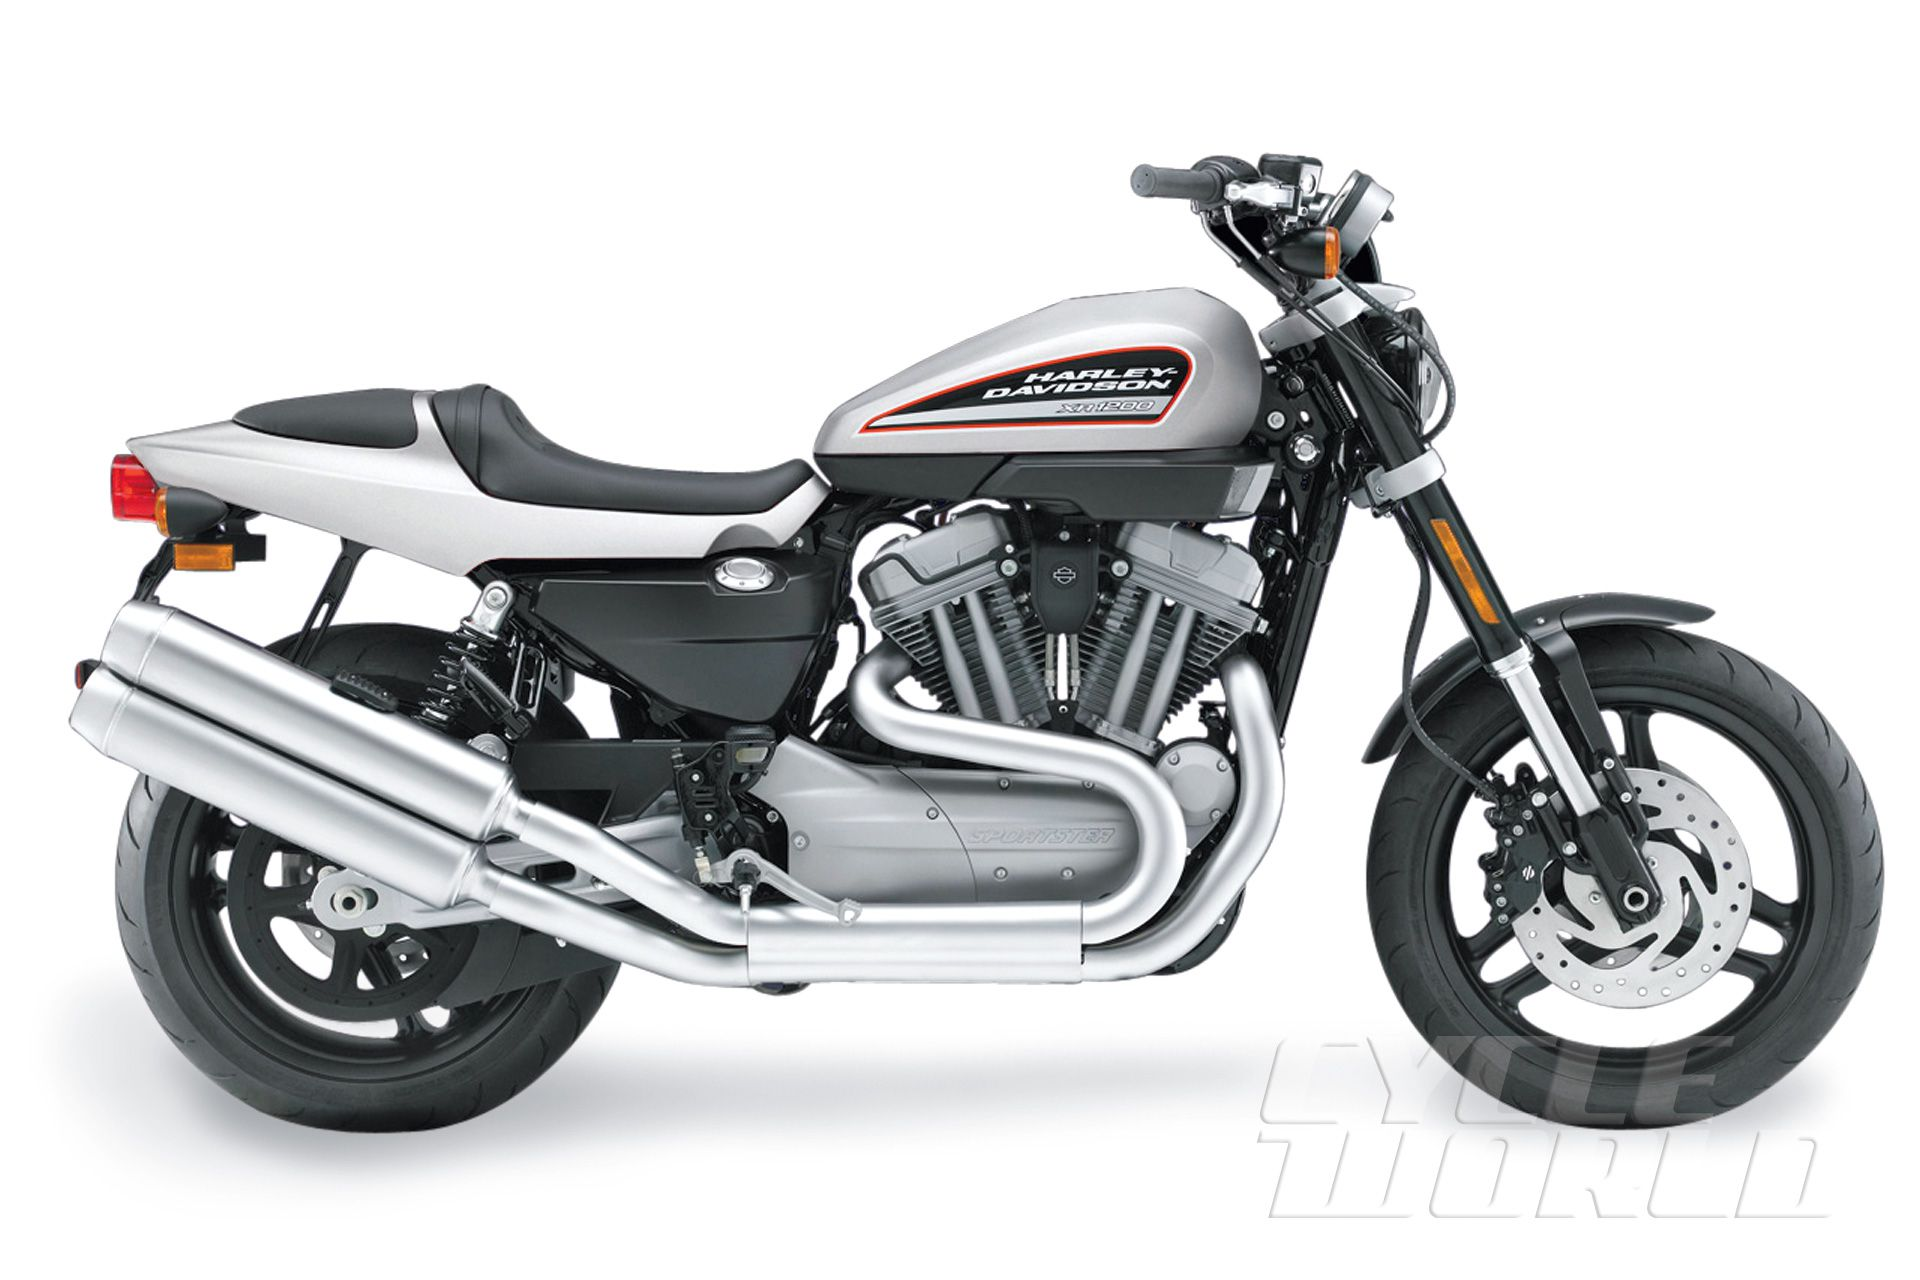 Harley-Davidson XR1200 vs  Ducati Sport 1000 COMPARISON TEST